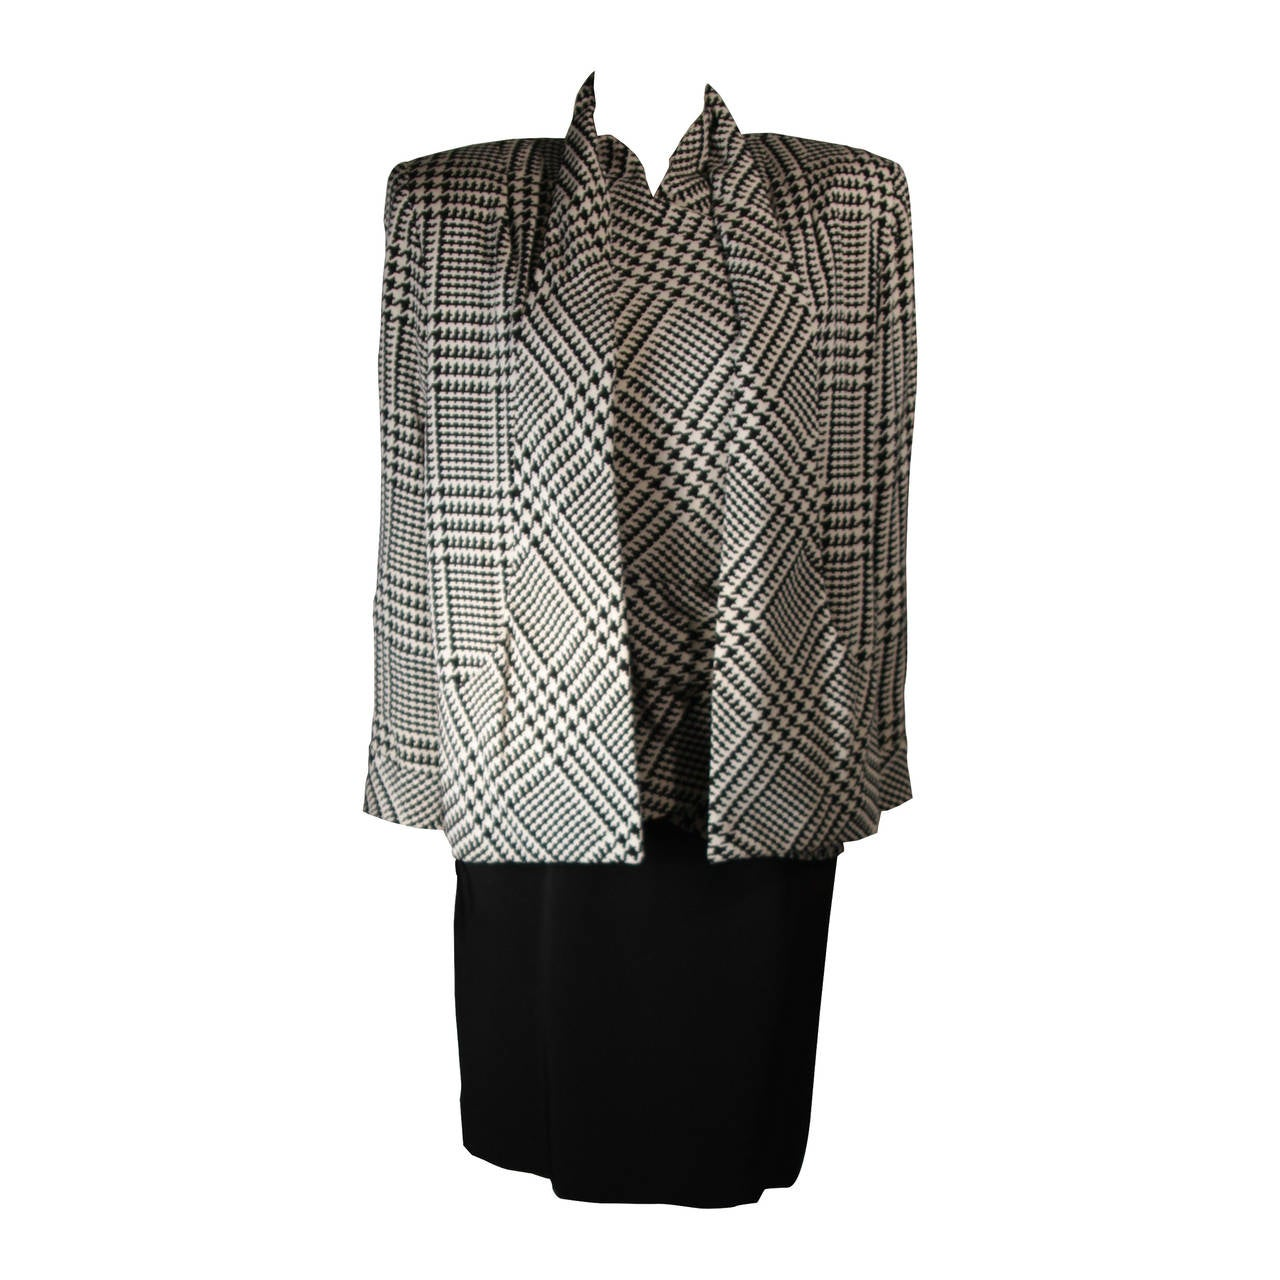 Vicky Tiel Black and White Houndstooth Cocktail Dress and Jacket Size Small